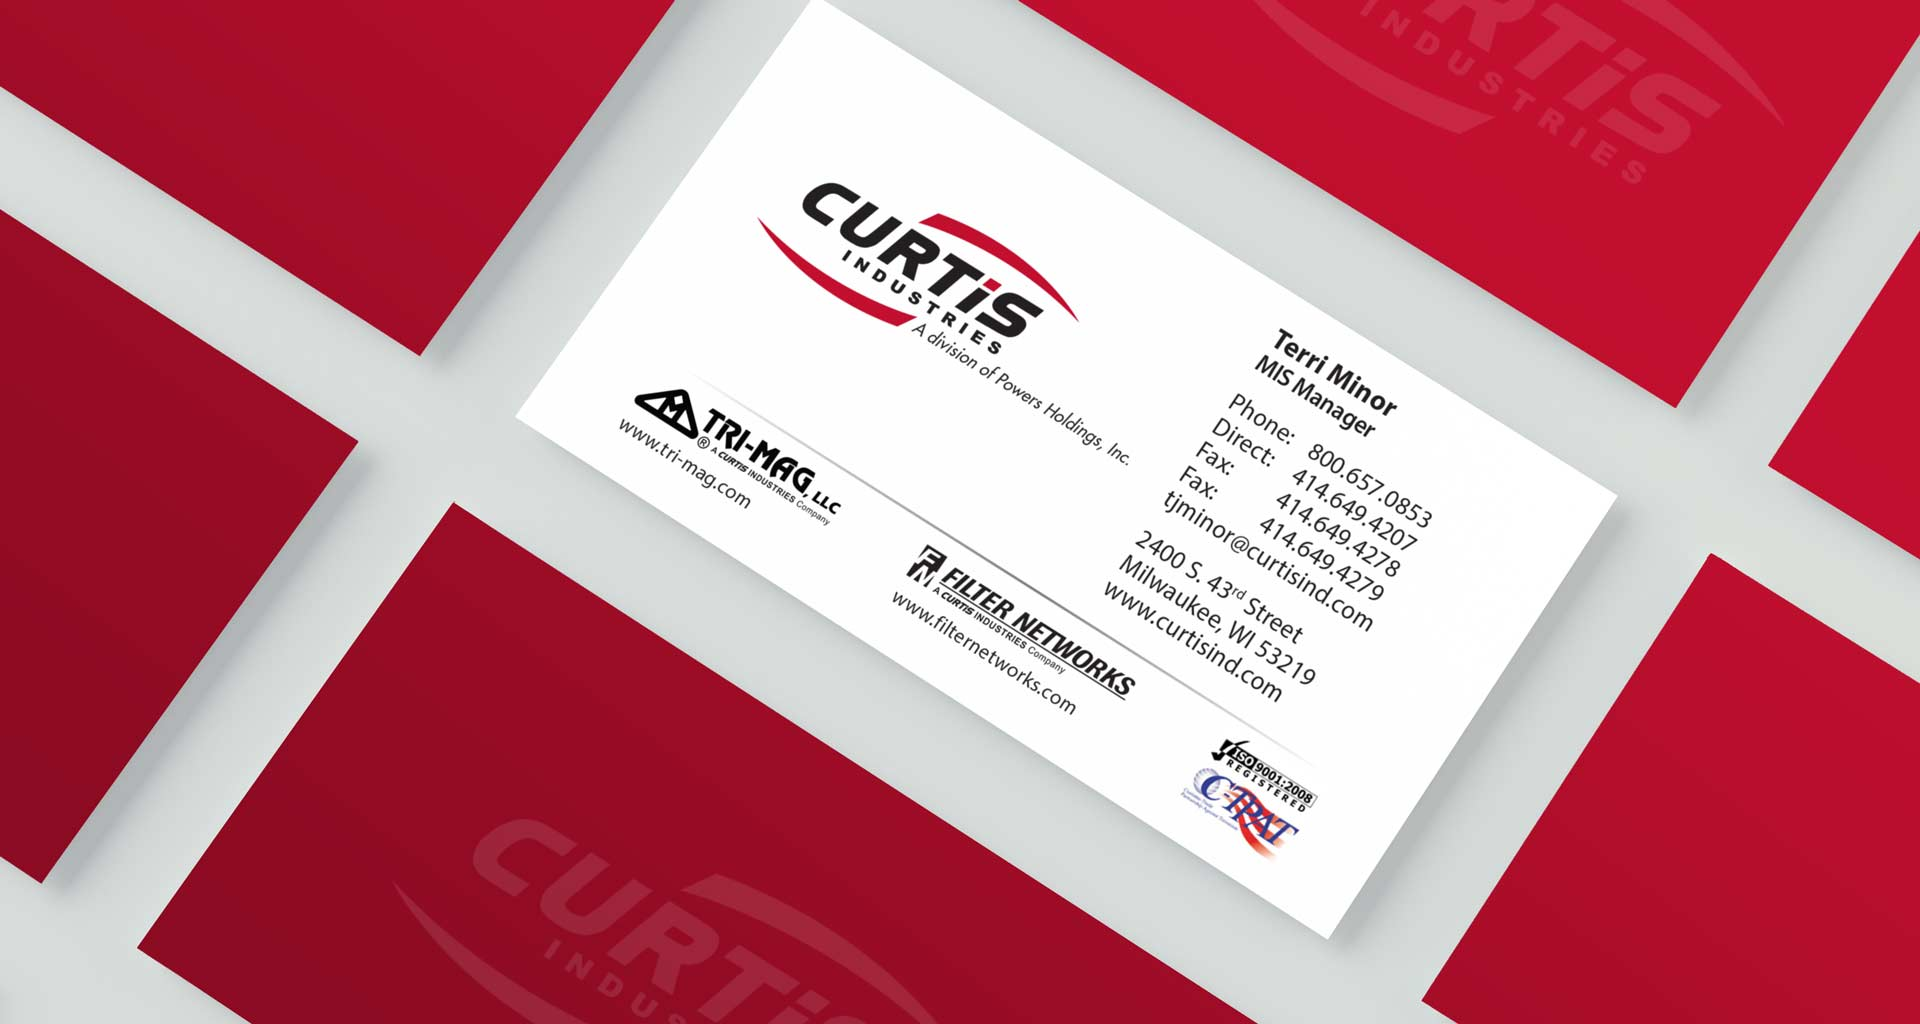 NAVEO marketing designed new business cards for Curtis Industries as part of their new industrial marketing strategy.